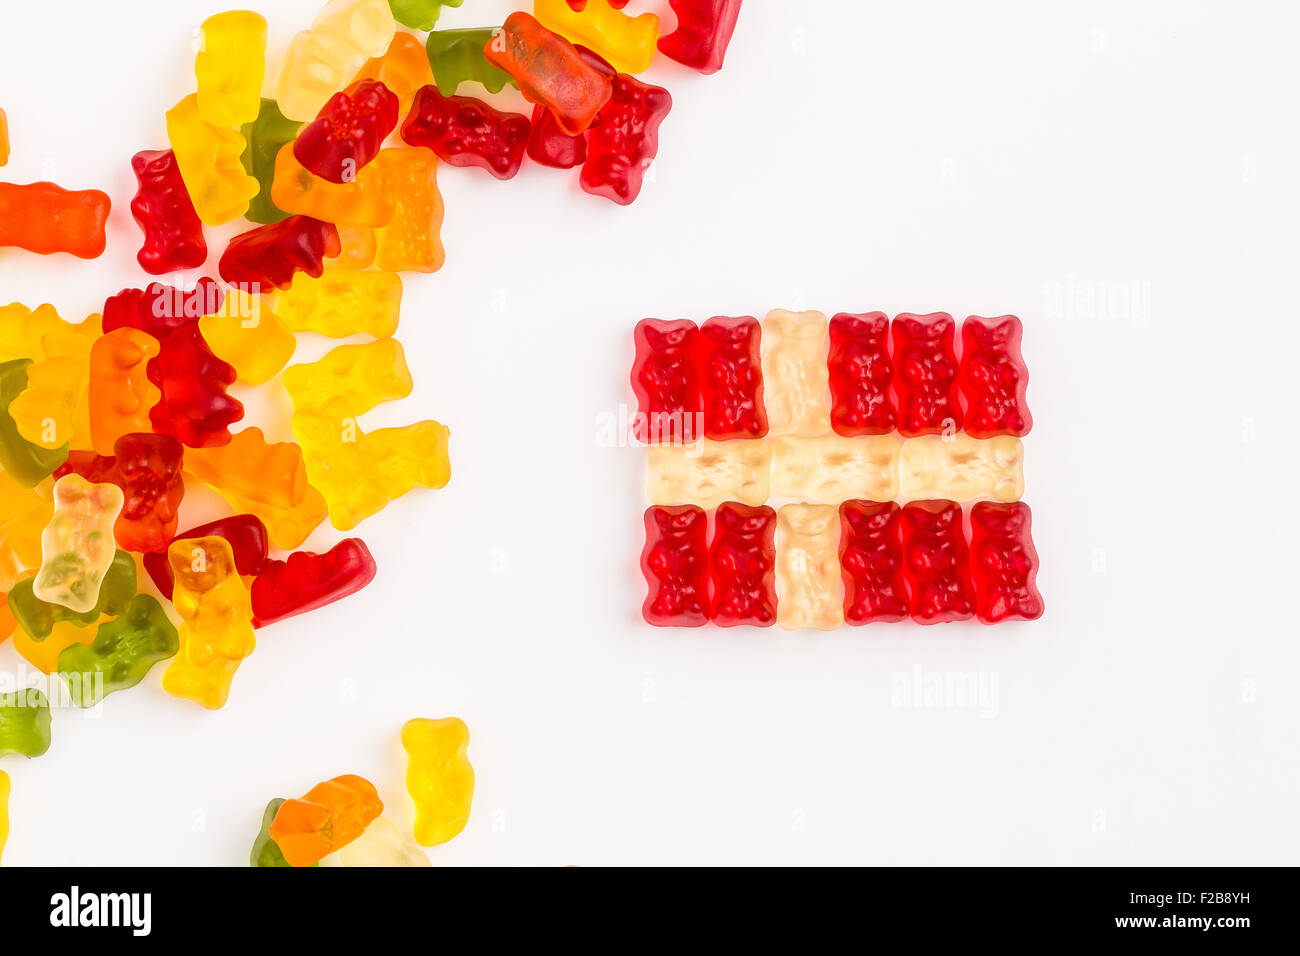 Danish flag - Stock Image